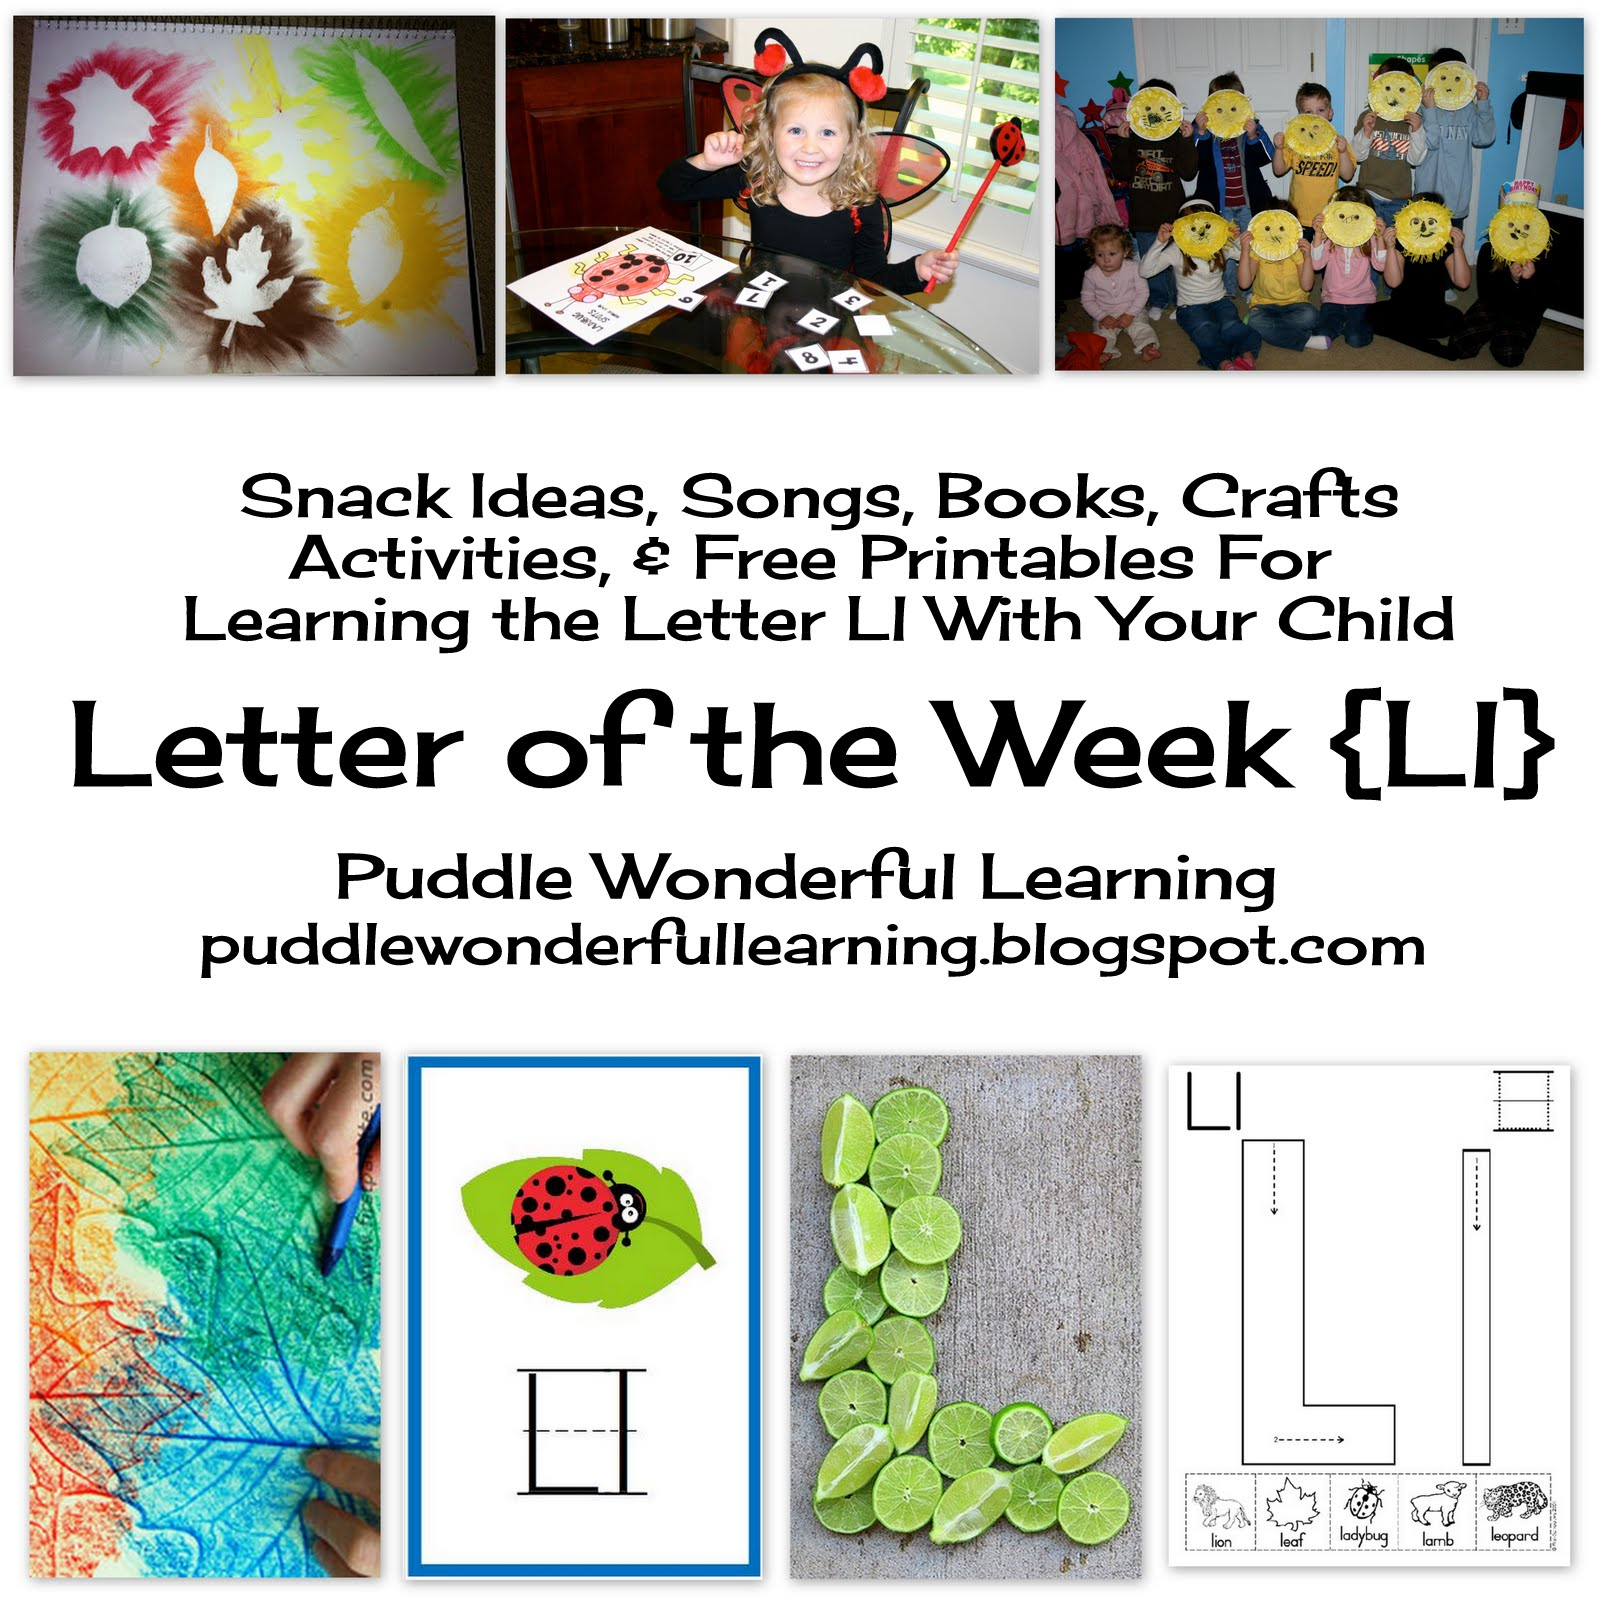 Puddle Wonderful Learning Preschool Activities Letter Of The Week Ll